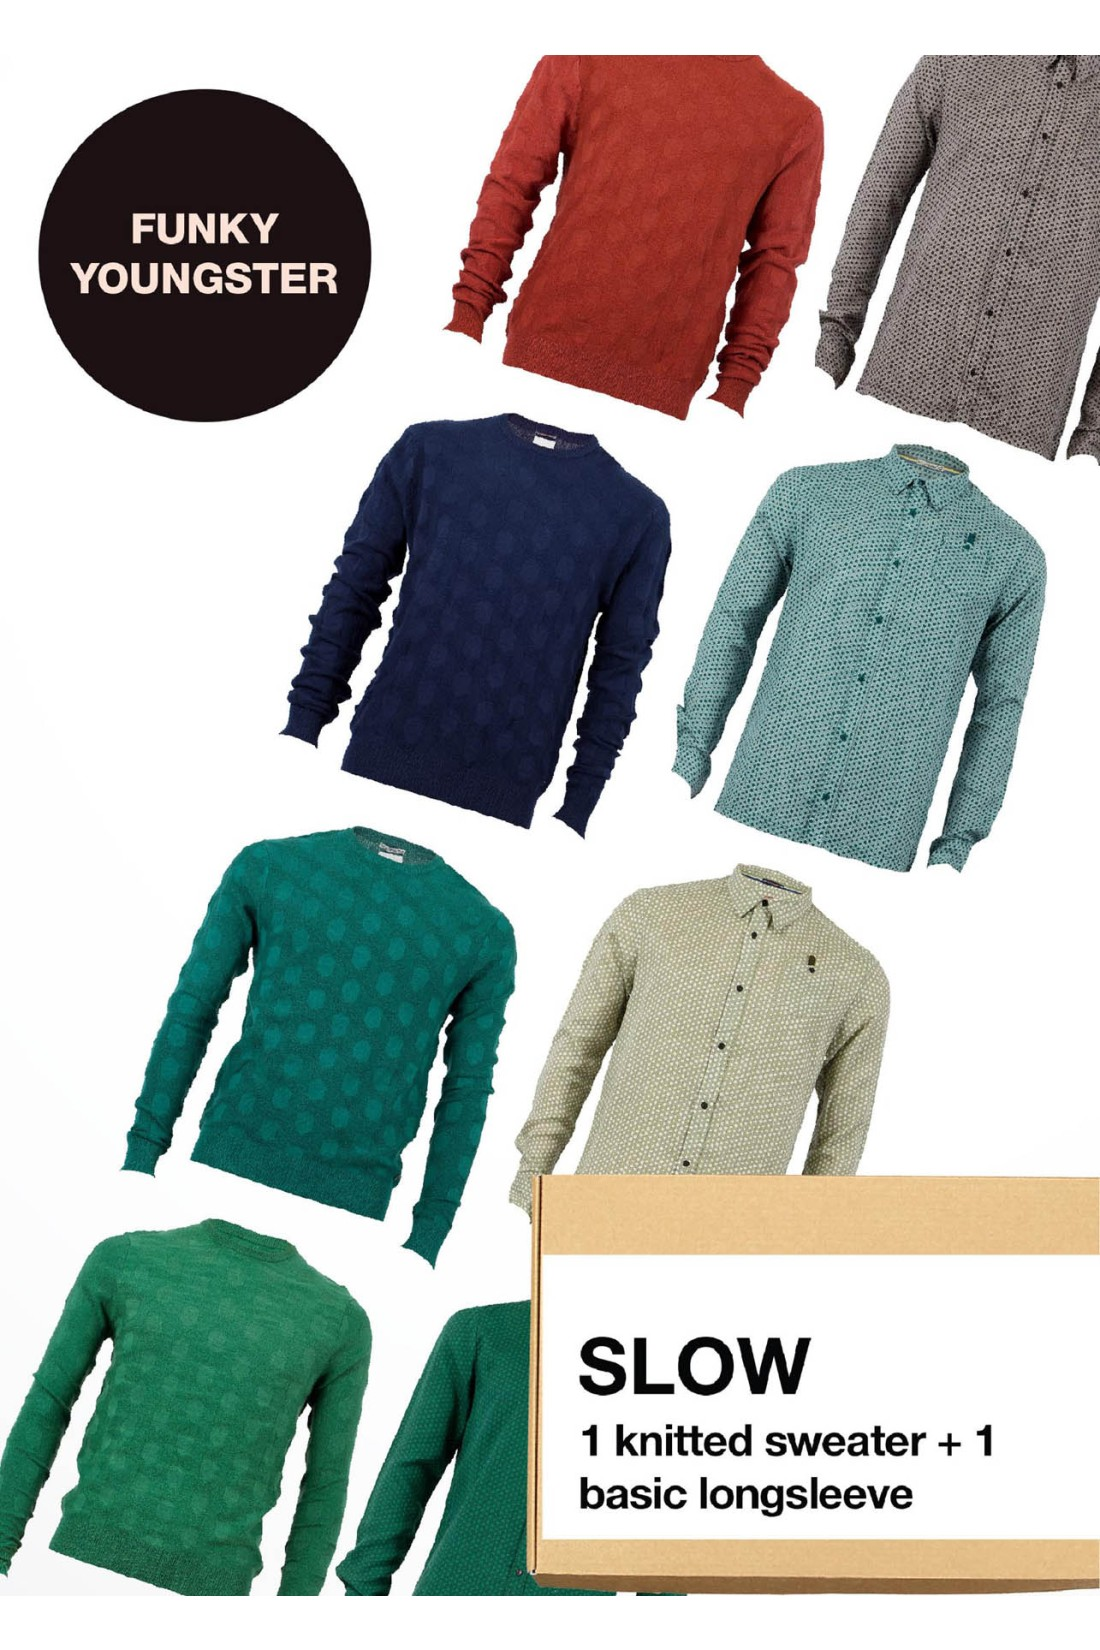 Surprise Box FUNKY YOUNGSTER - SLOW - 2 Styles XS-S - Knitted Sweater Basic + Longsleeve Shirt Basic